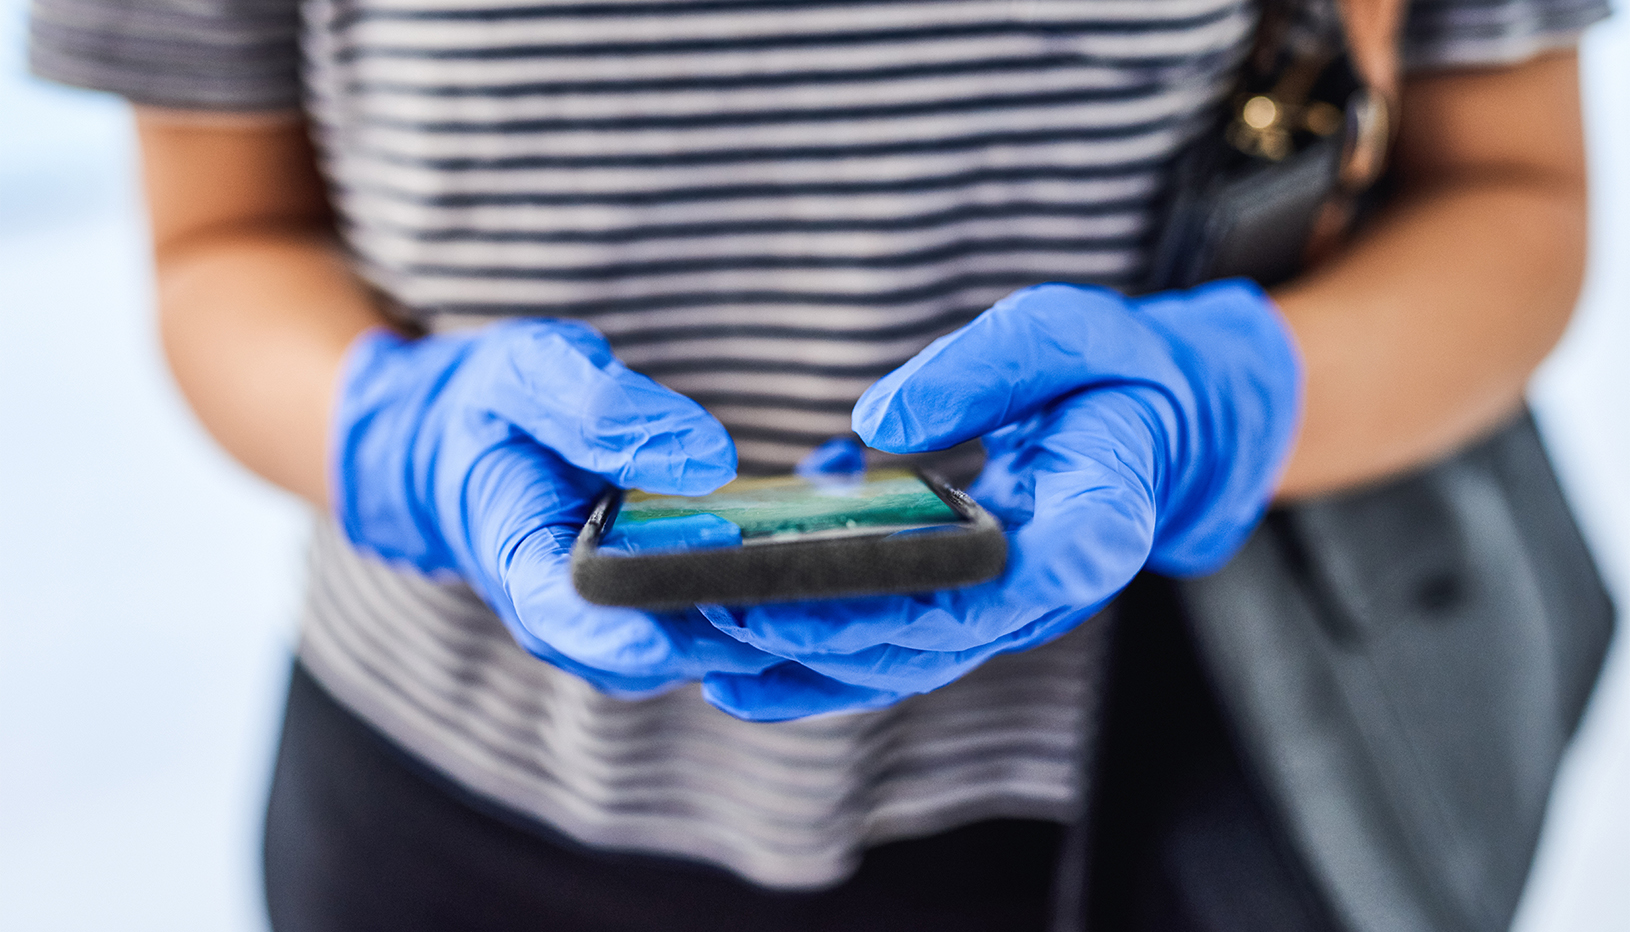 person wearing surgical gloves holding a smart phone